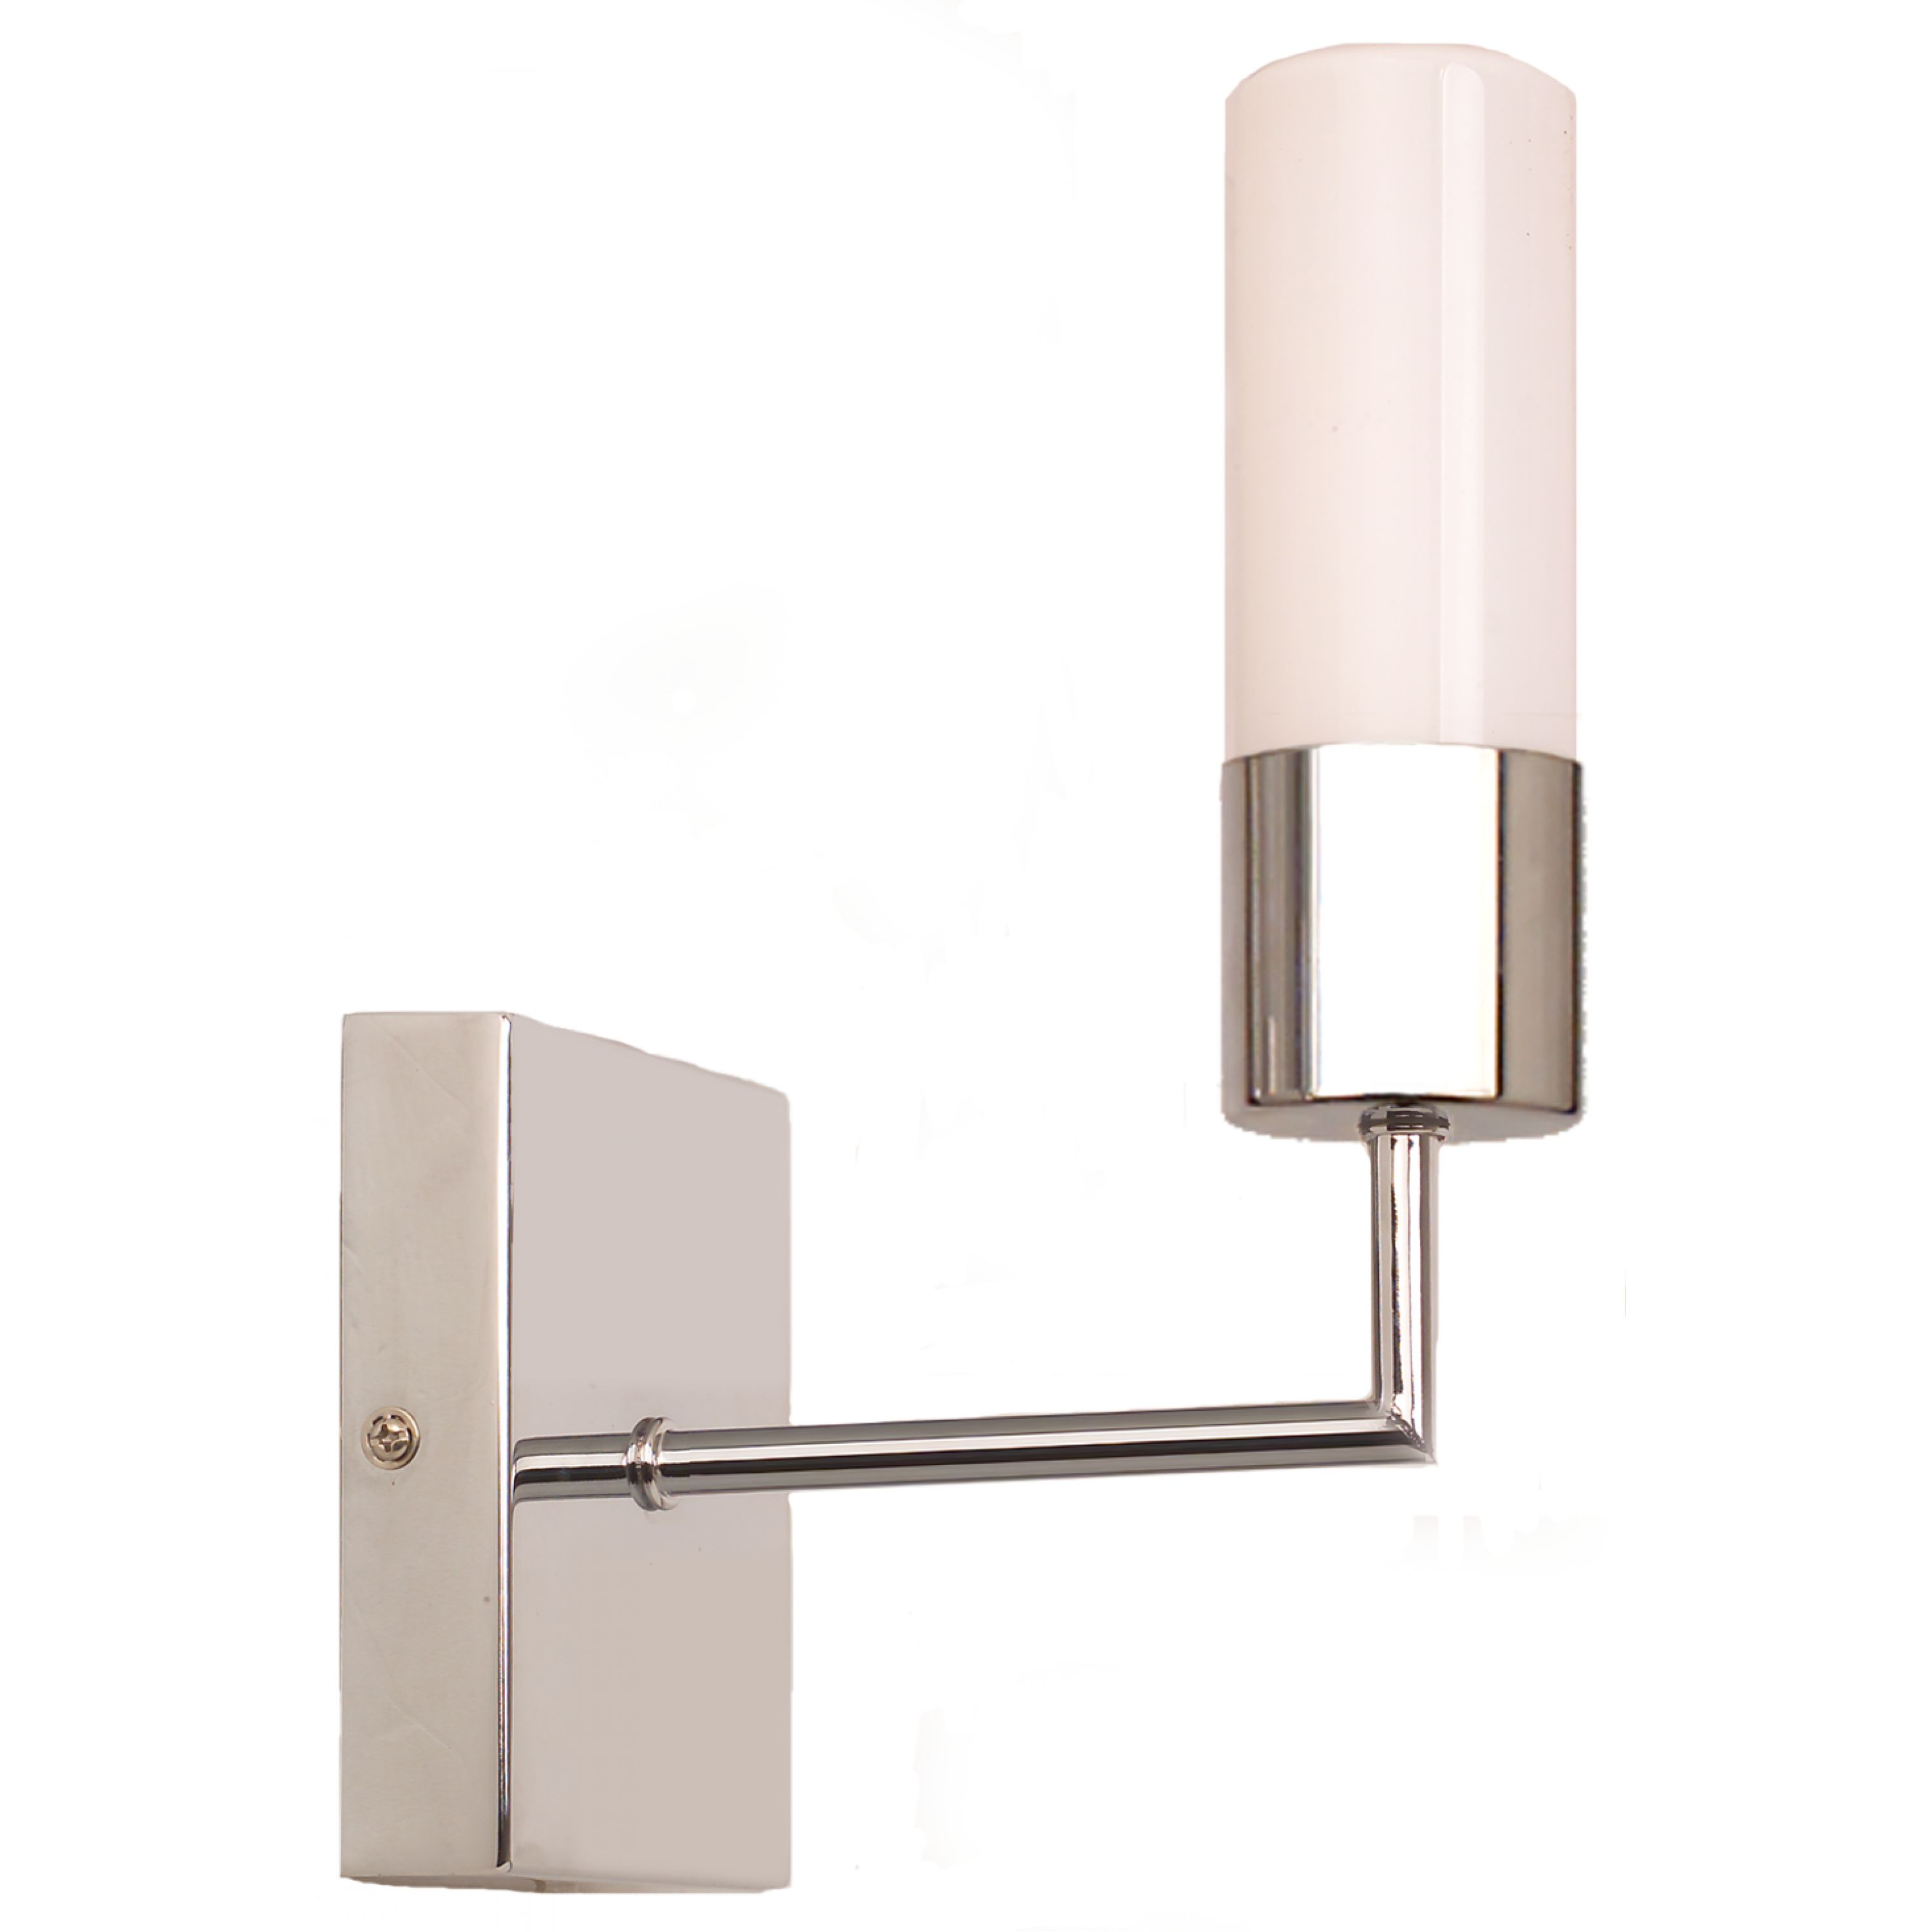 Tilburg Wall Light (Polished nickel, white)